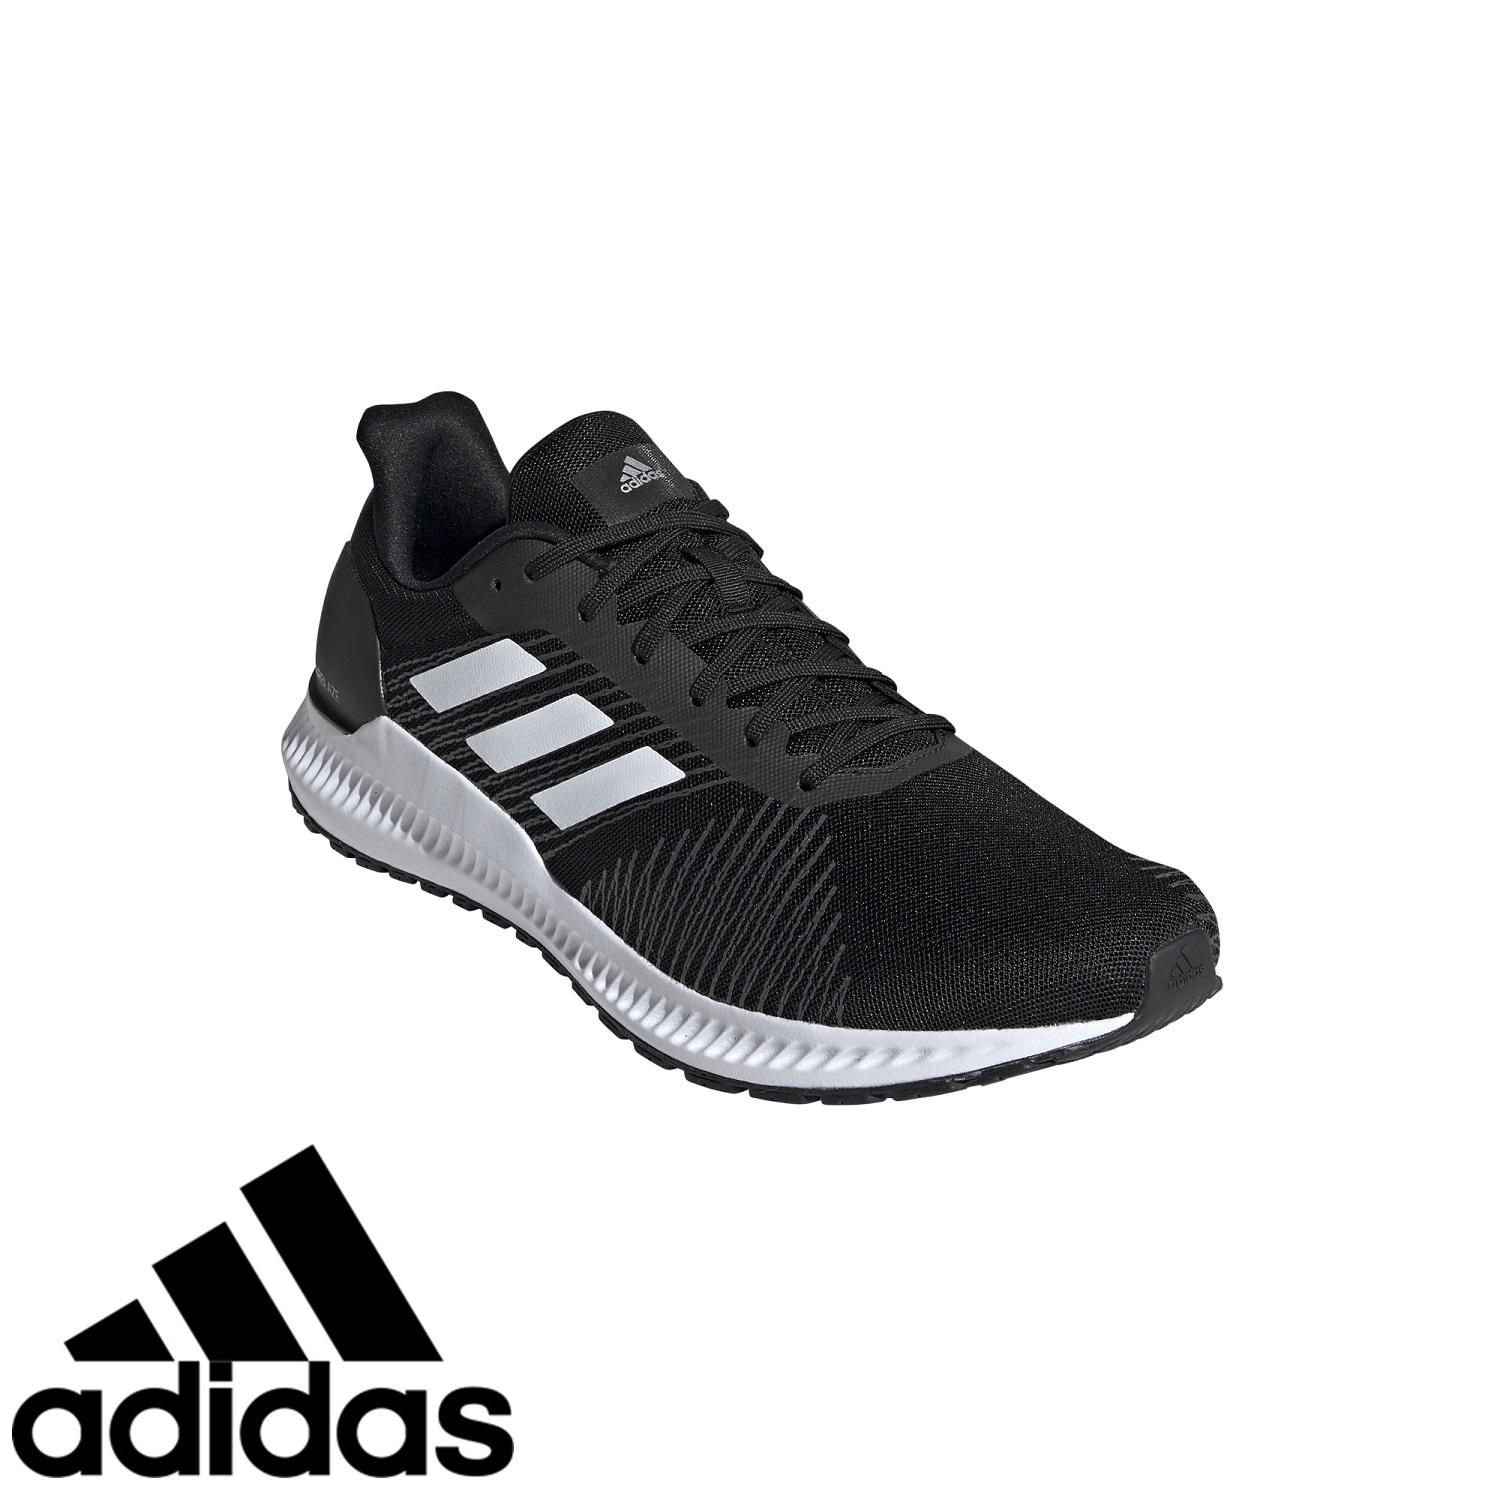 separation shoes f38c3 1e1e0 Running Shoes for Men for sale - Mens Running Shoes online brands, prices   reviews in Philippines  Lazada.com.ph